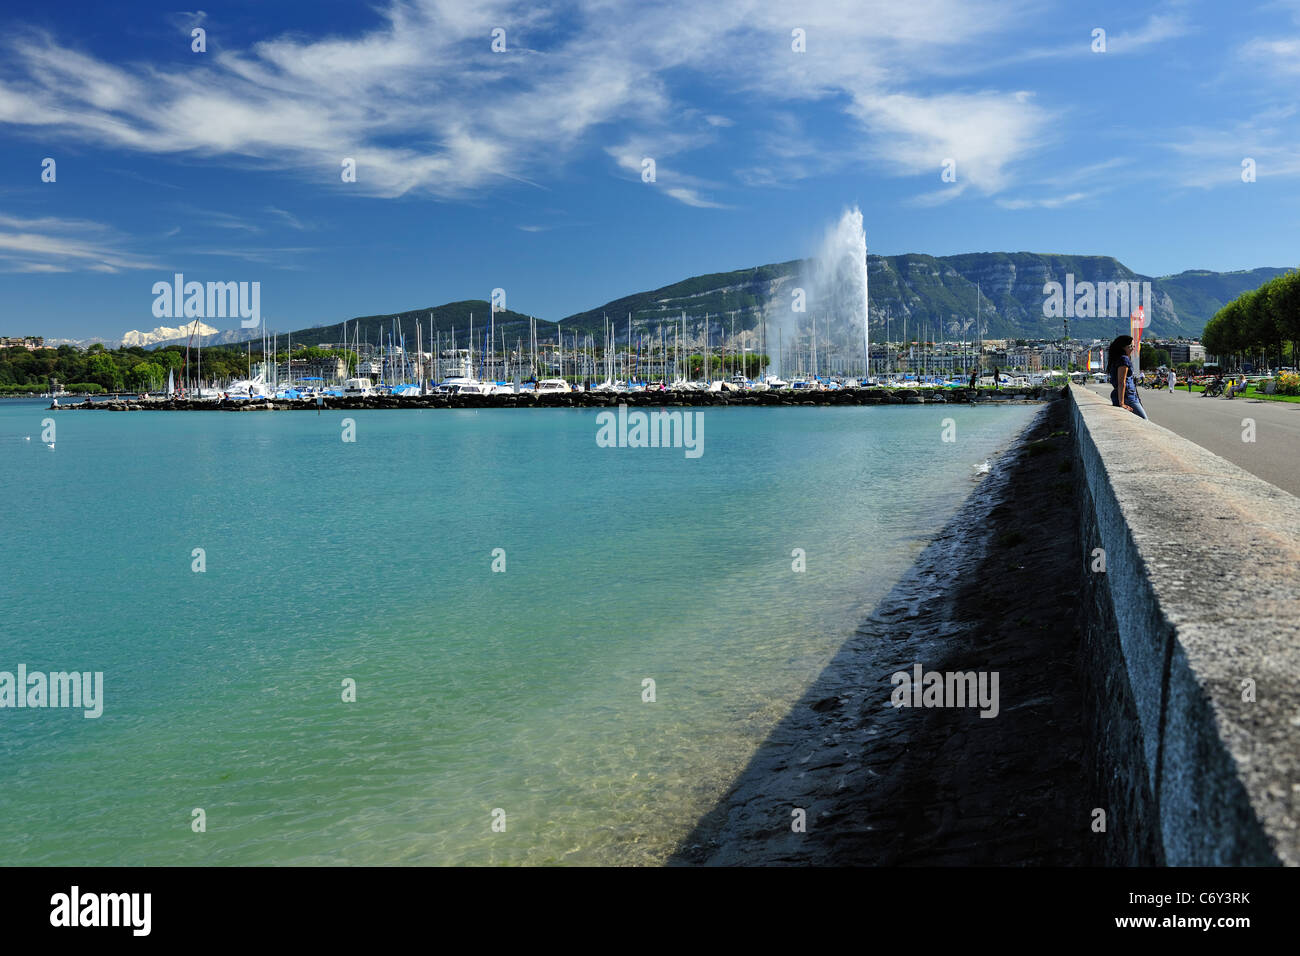 Lake Geneva, Switzerland aka Lac Leman, blue water with the water fountain and boats with the mountains and blue - Stock Image